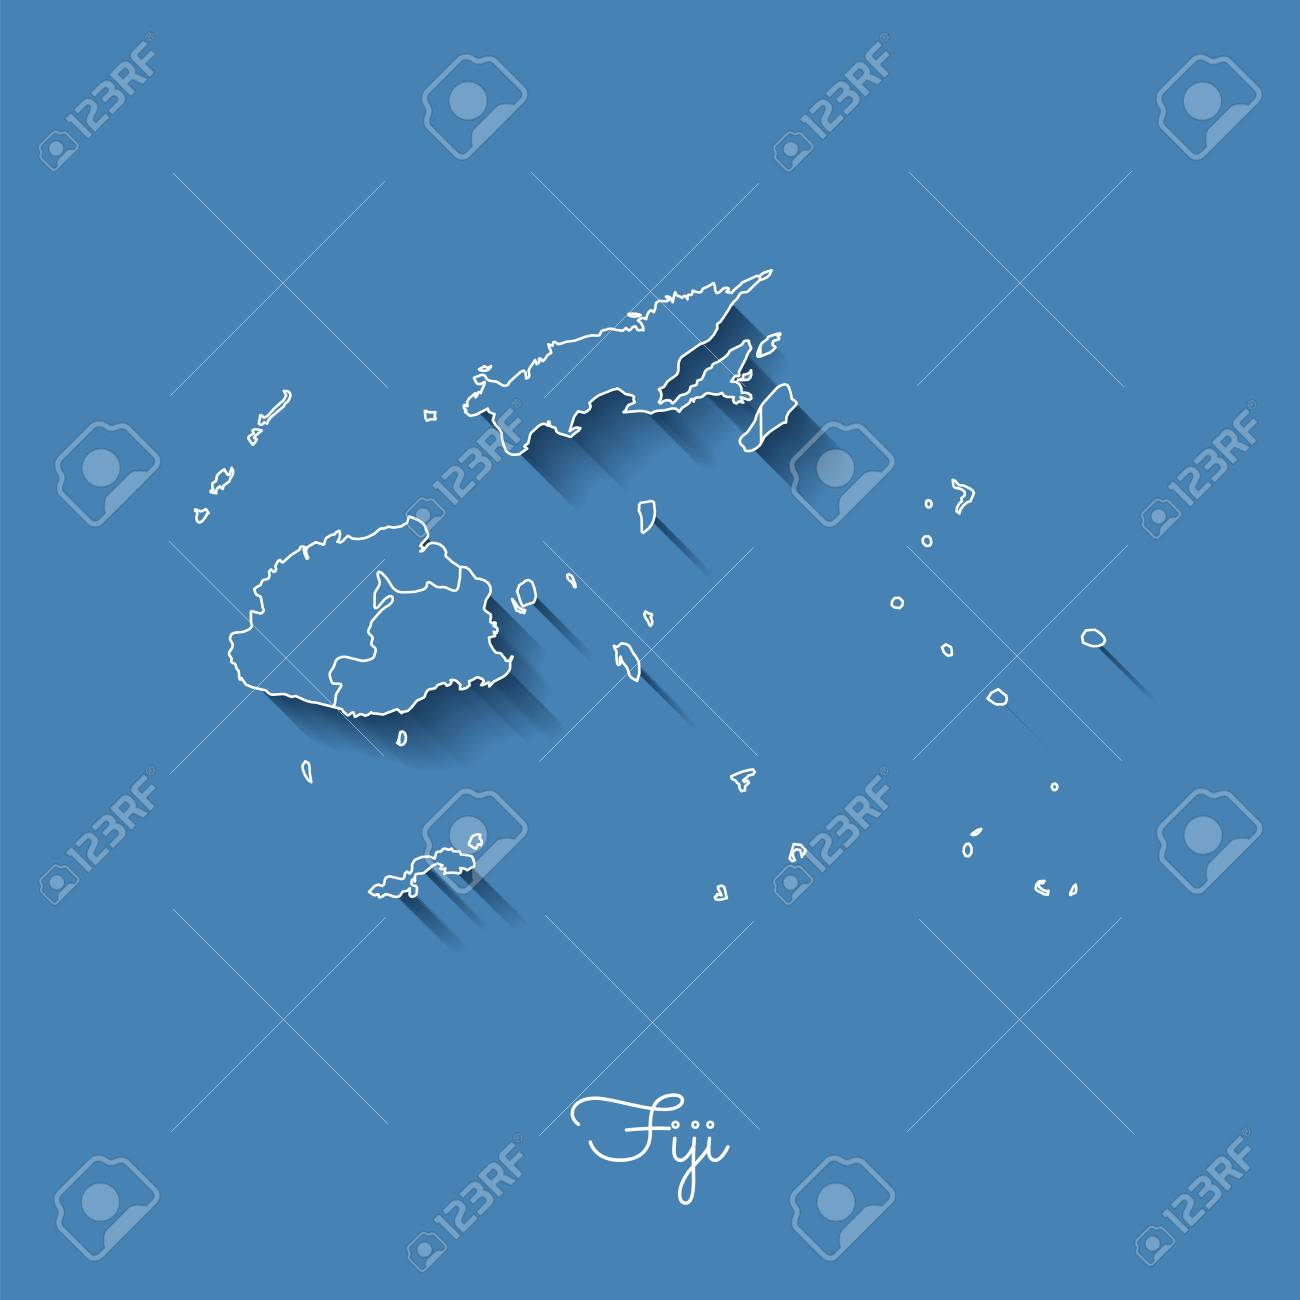 Fiji Region Map: Blue With White Outline And Shadow On Blue ...